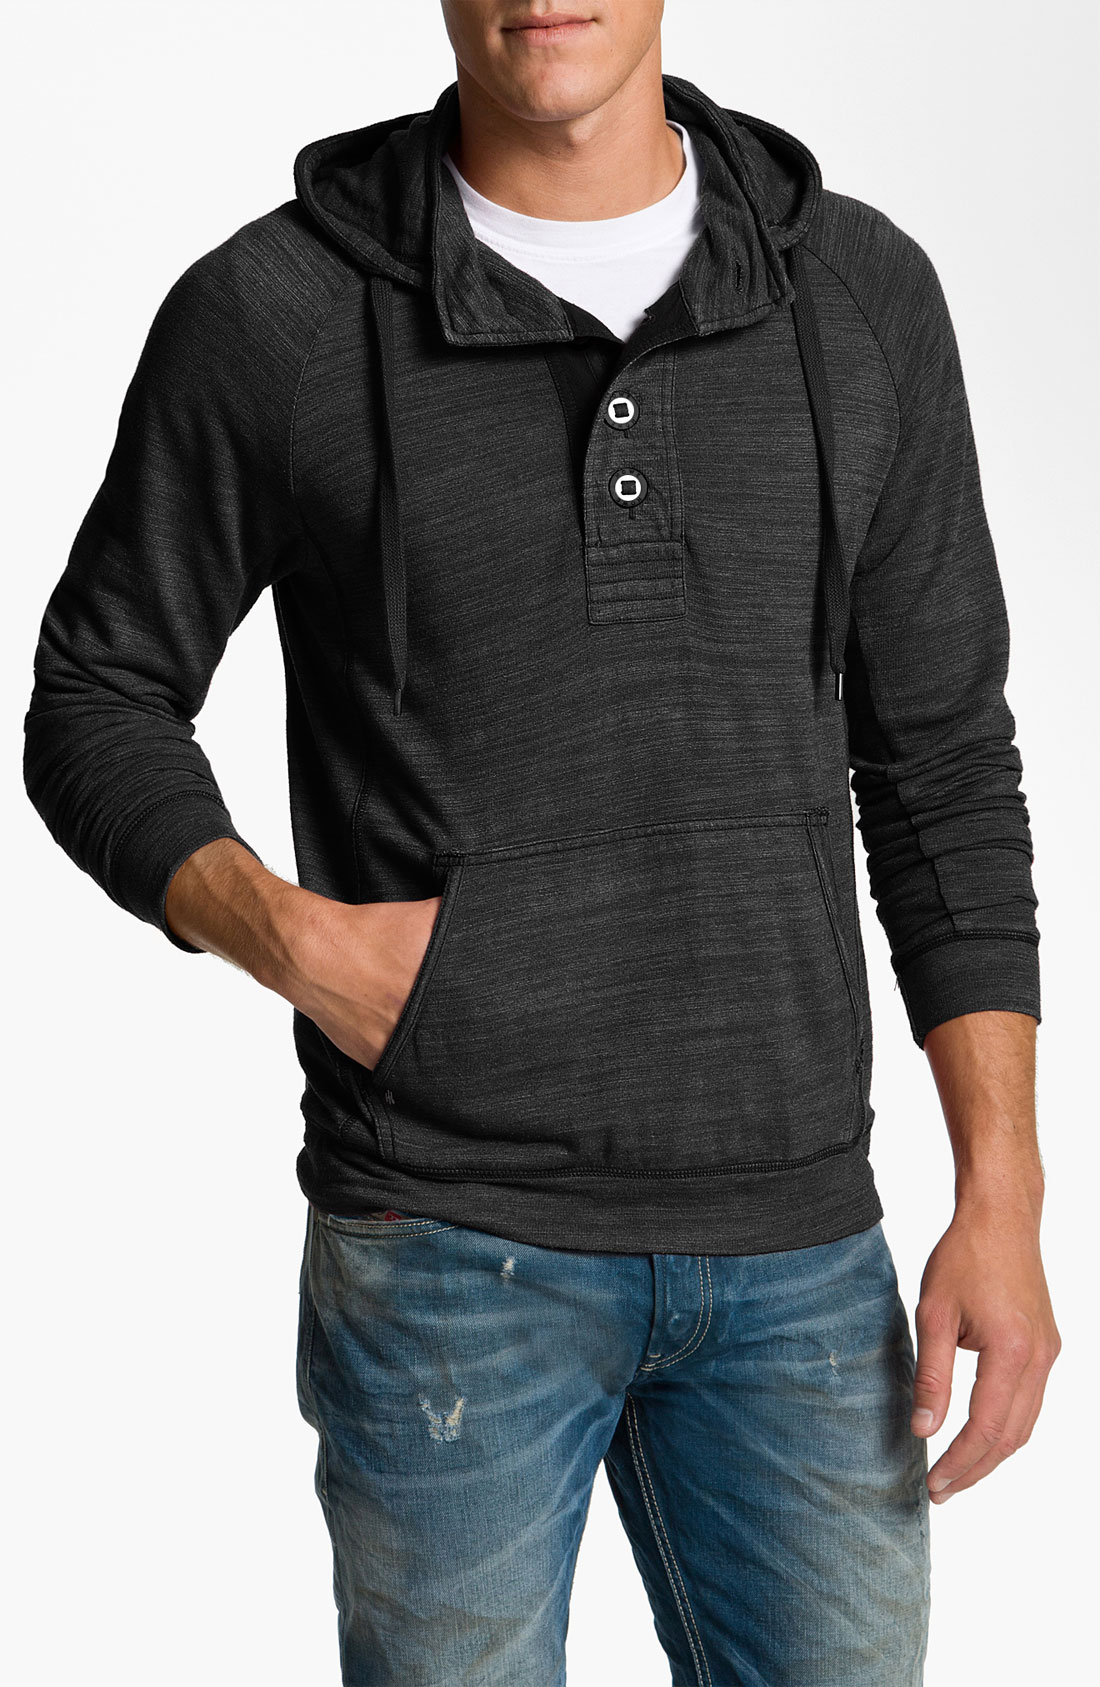 Shop Henley Sweatshirts & Hoodies from CafePress. The best selection of soft fleece Hoodies & Crew Neck Sweatshirts for Men, Women and Kids. Free Returns High Quality Printing Fast Shipping.